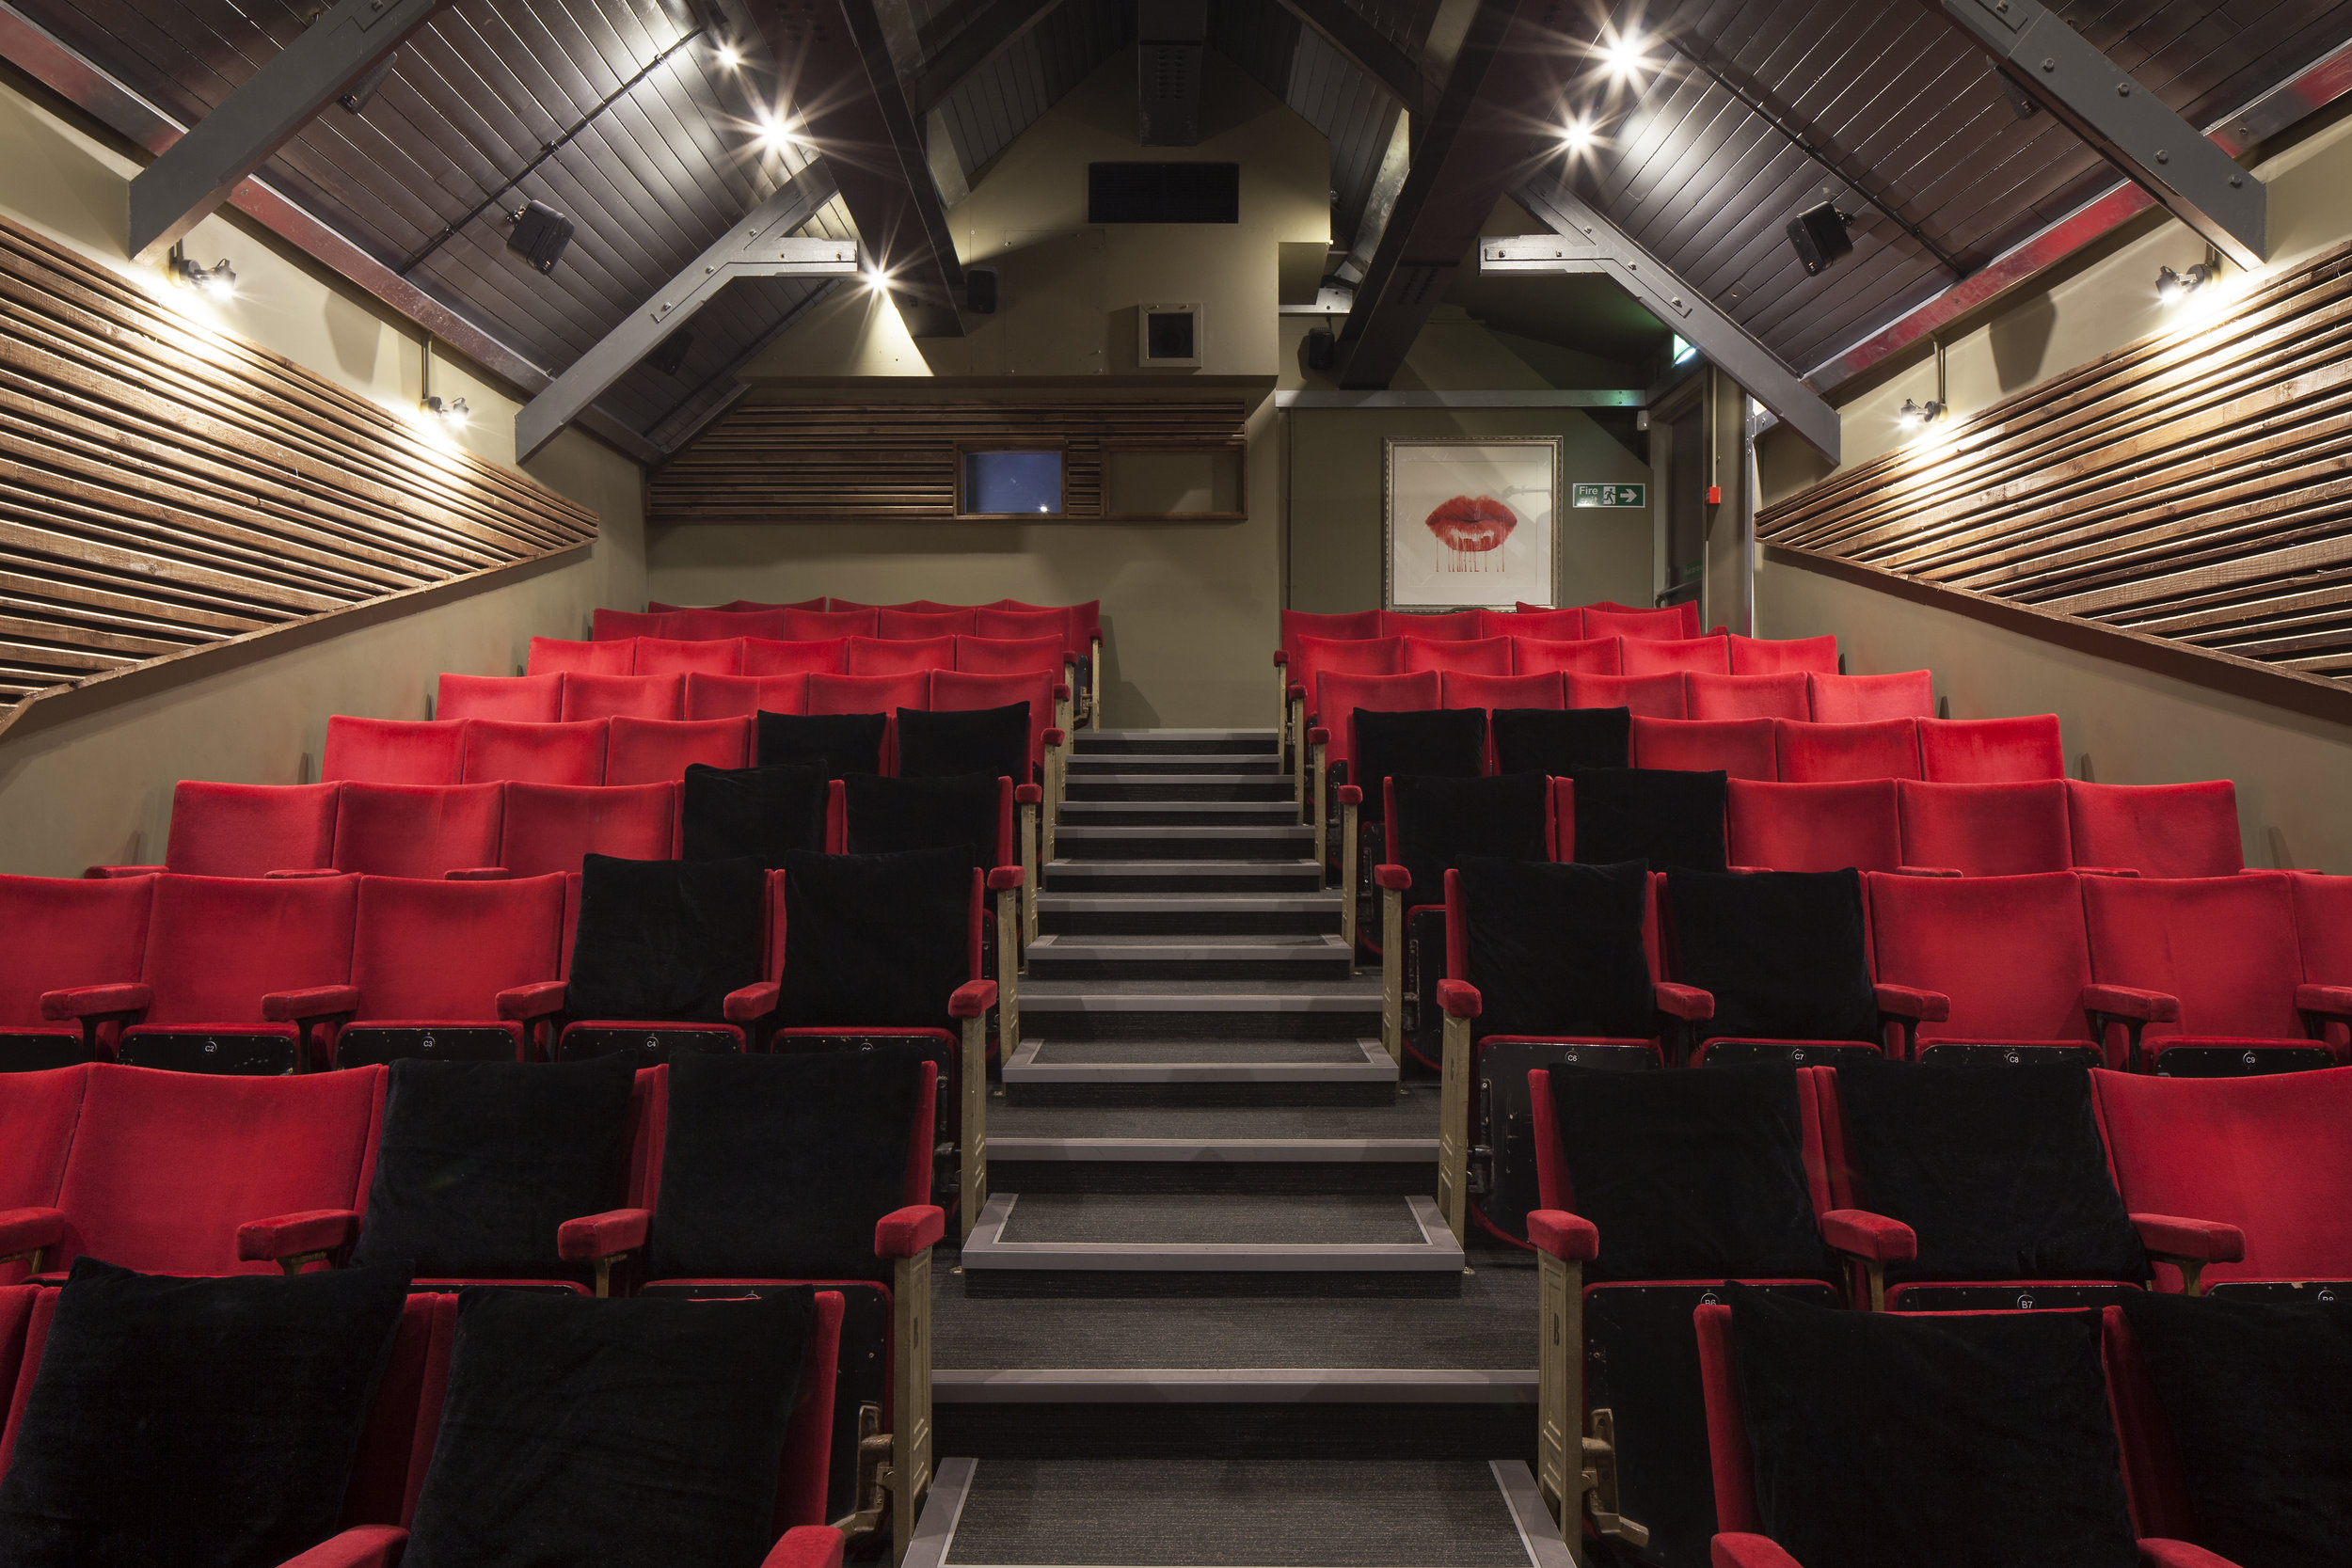 velvet cinema chairs.jpg